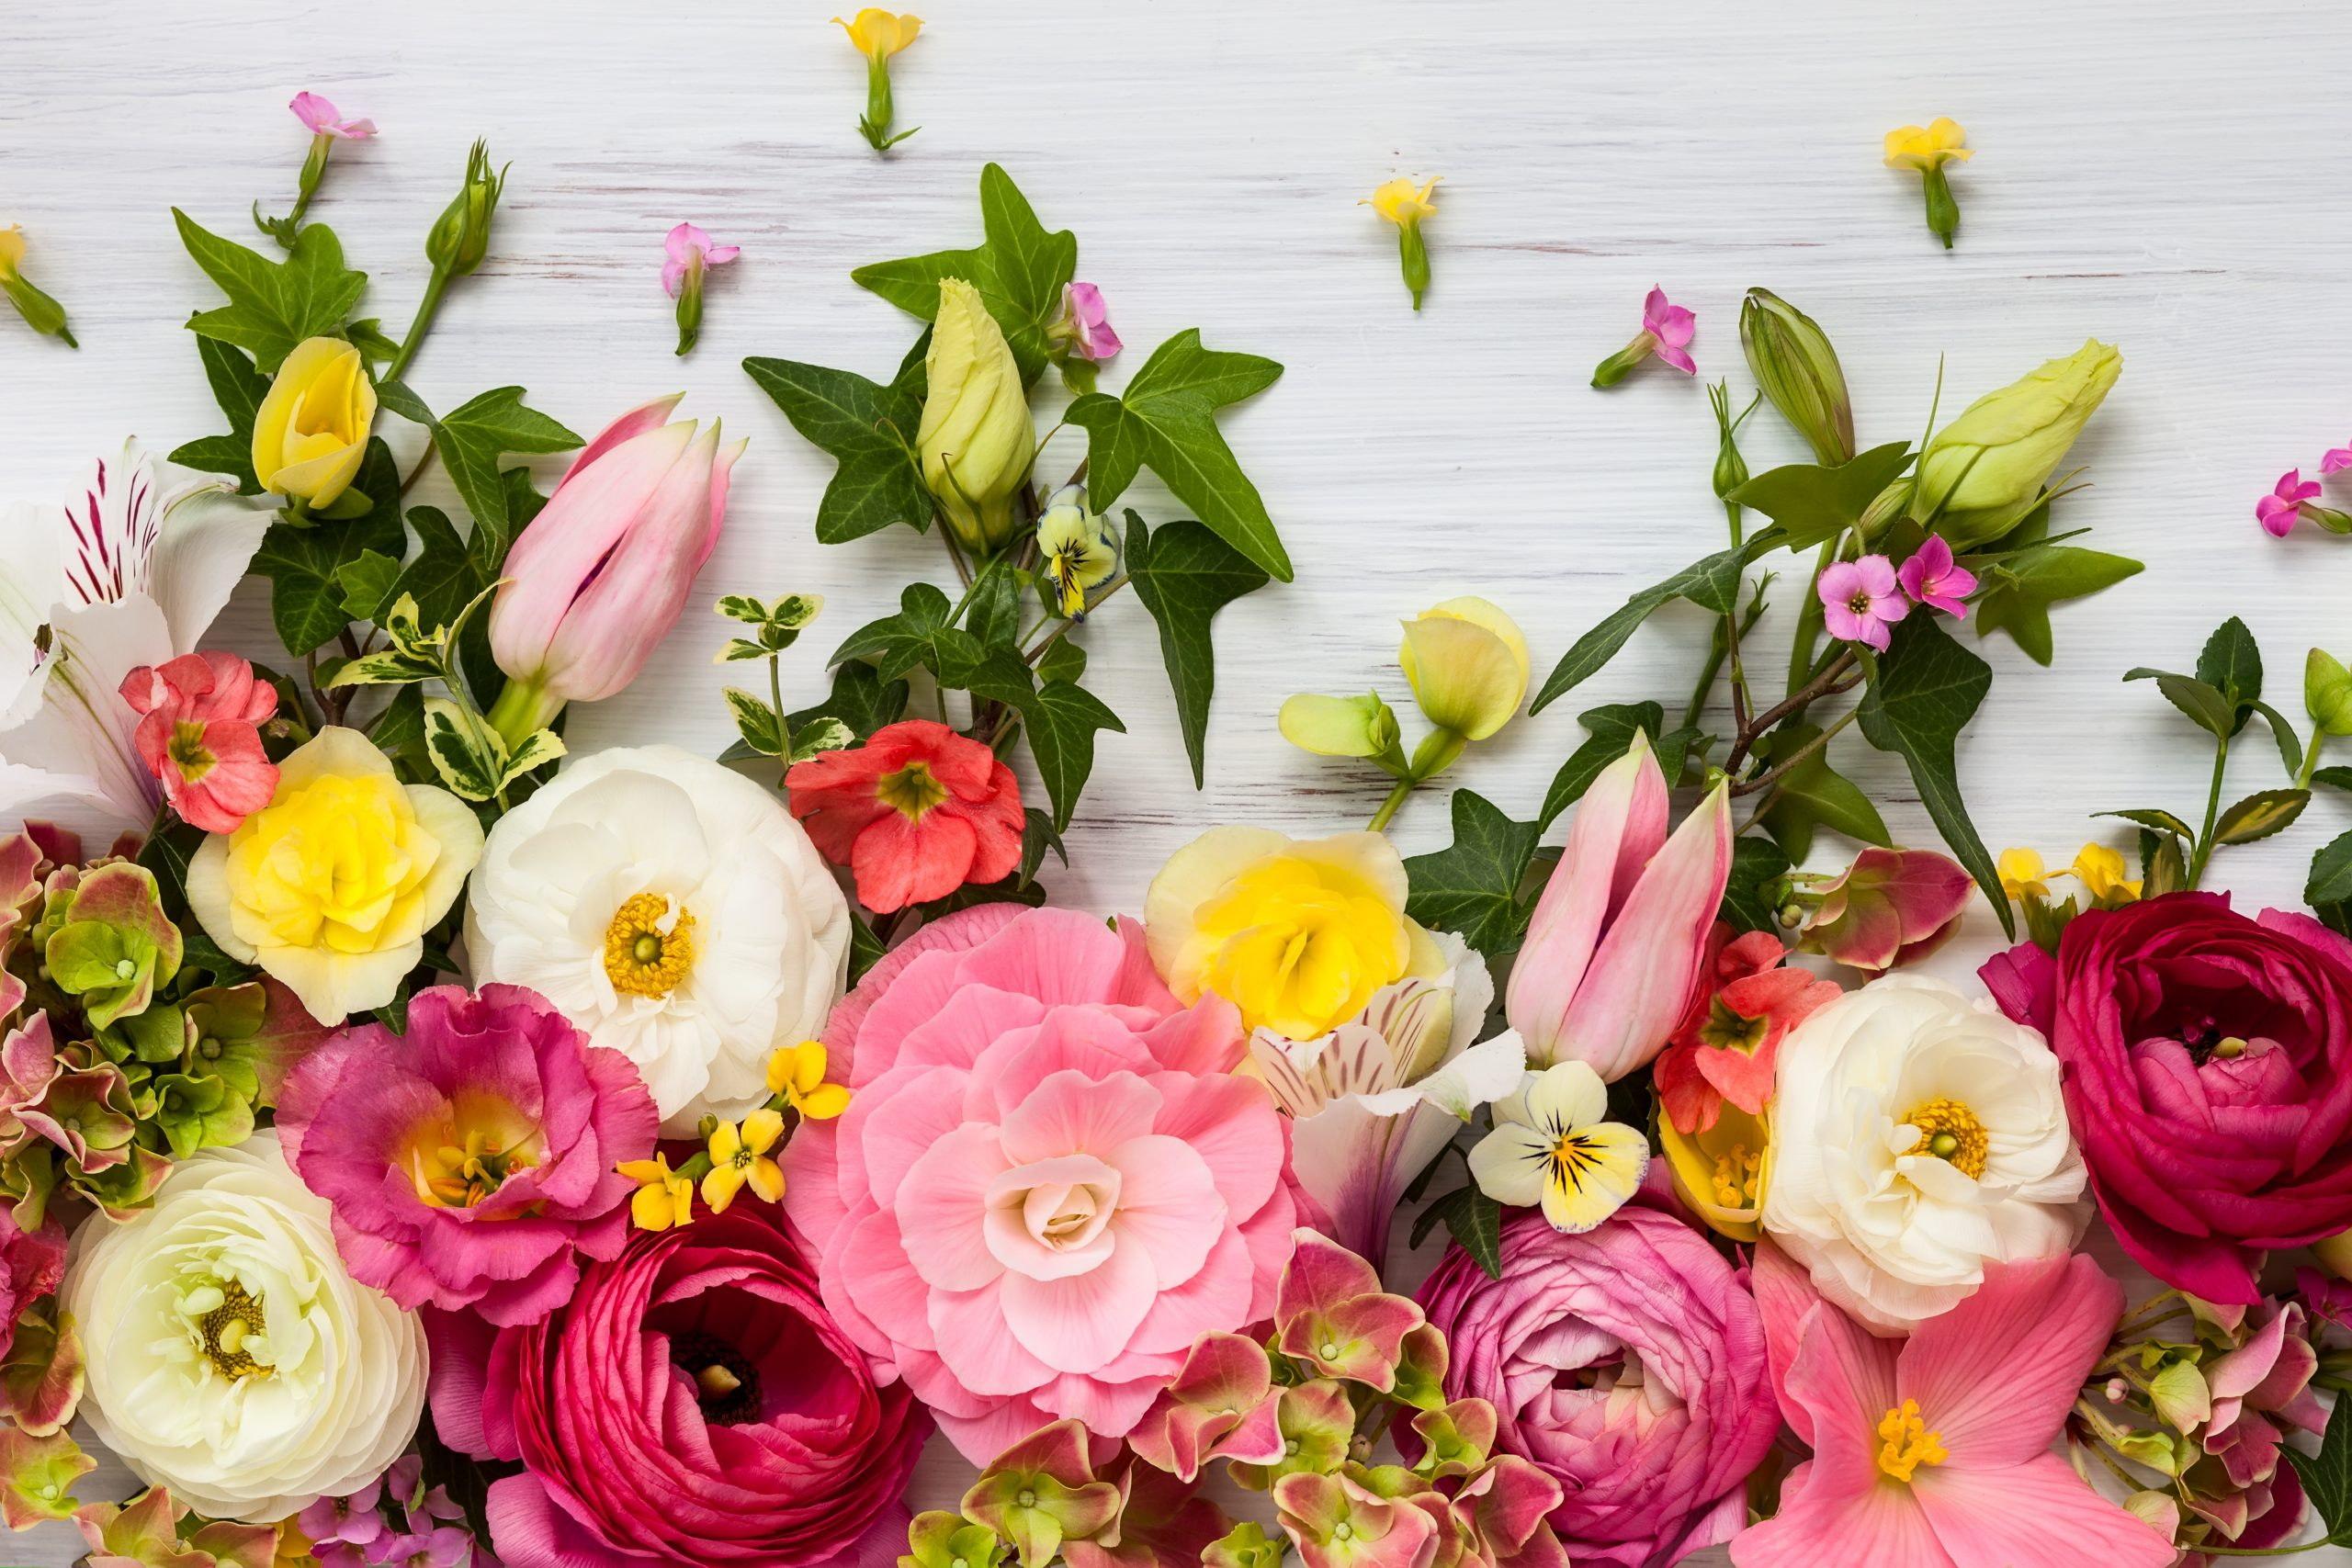 different, colorful flowers on a white background